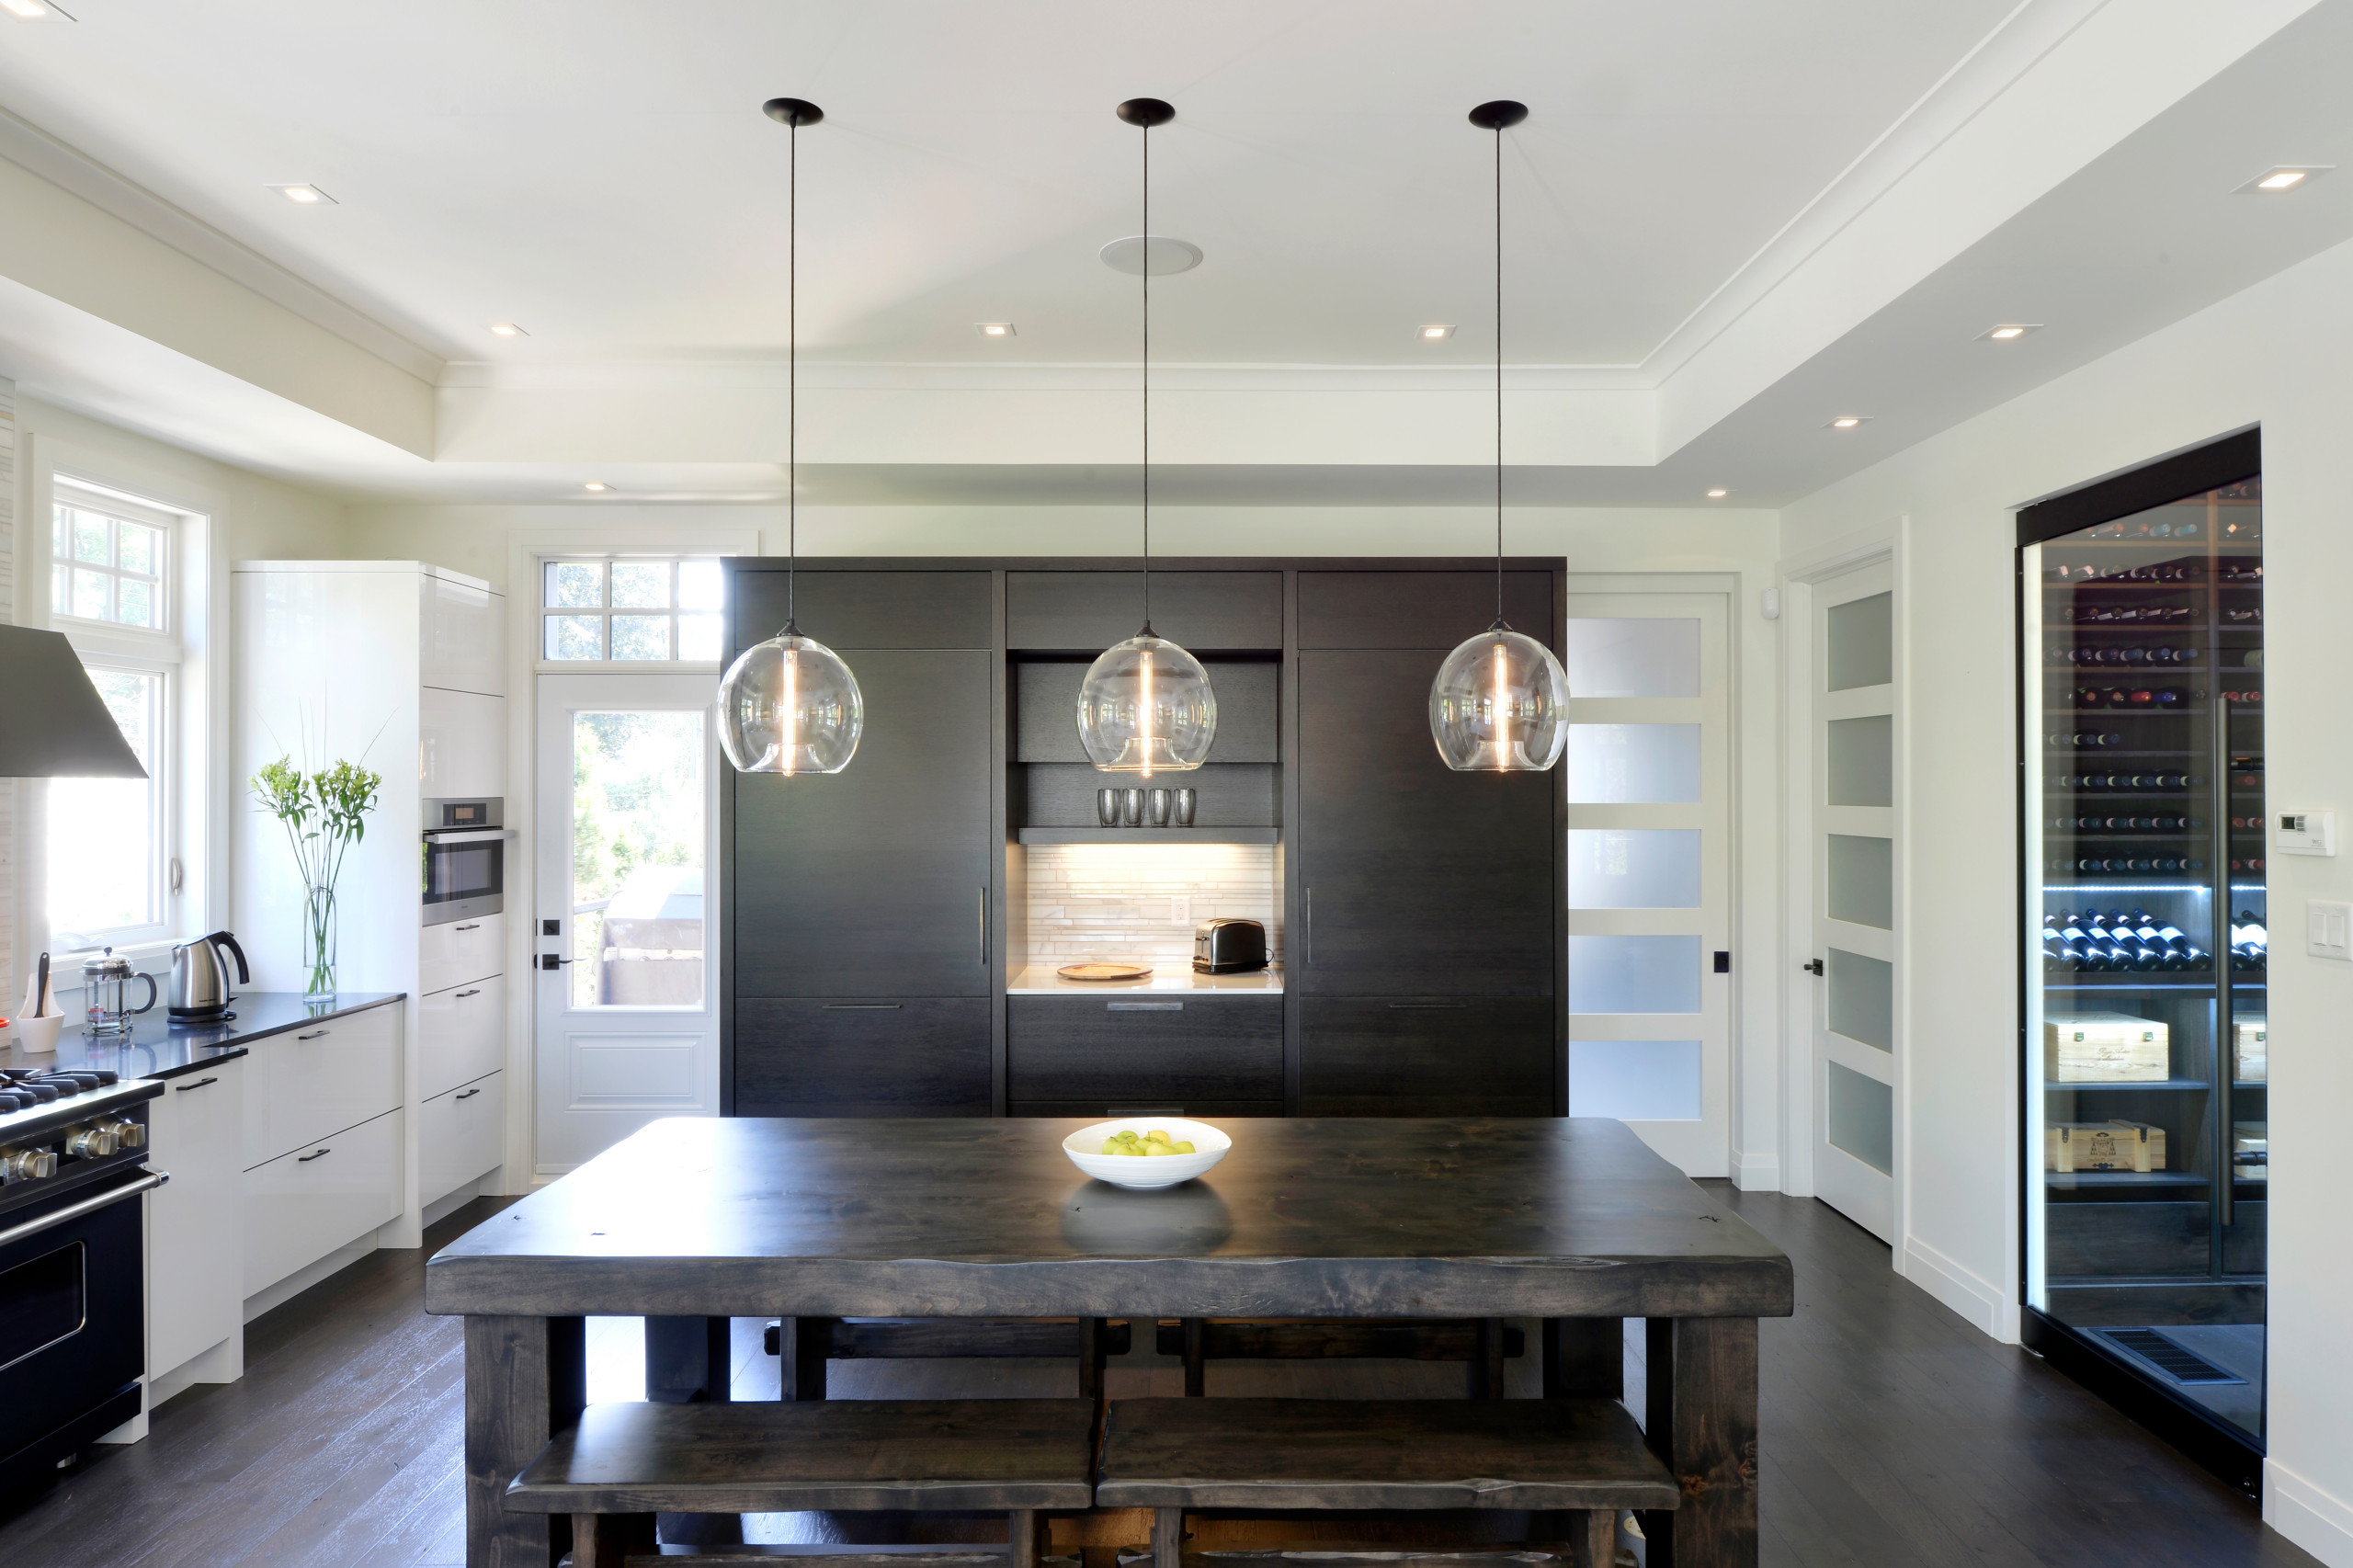 A spacious kitchen design by Deslaurier Custom Cabinets